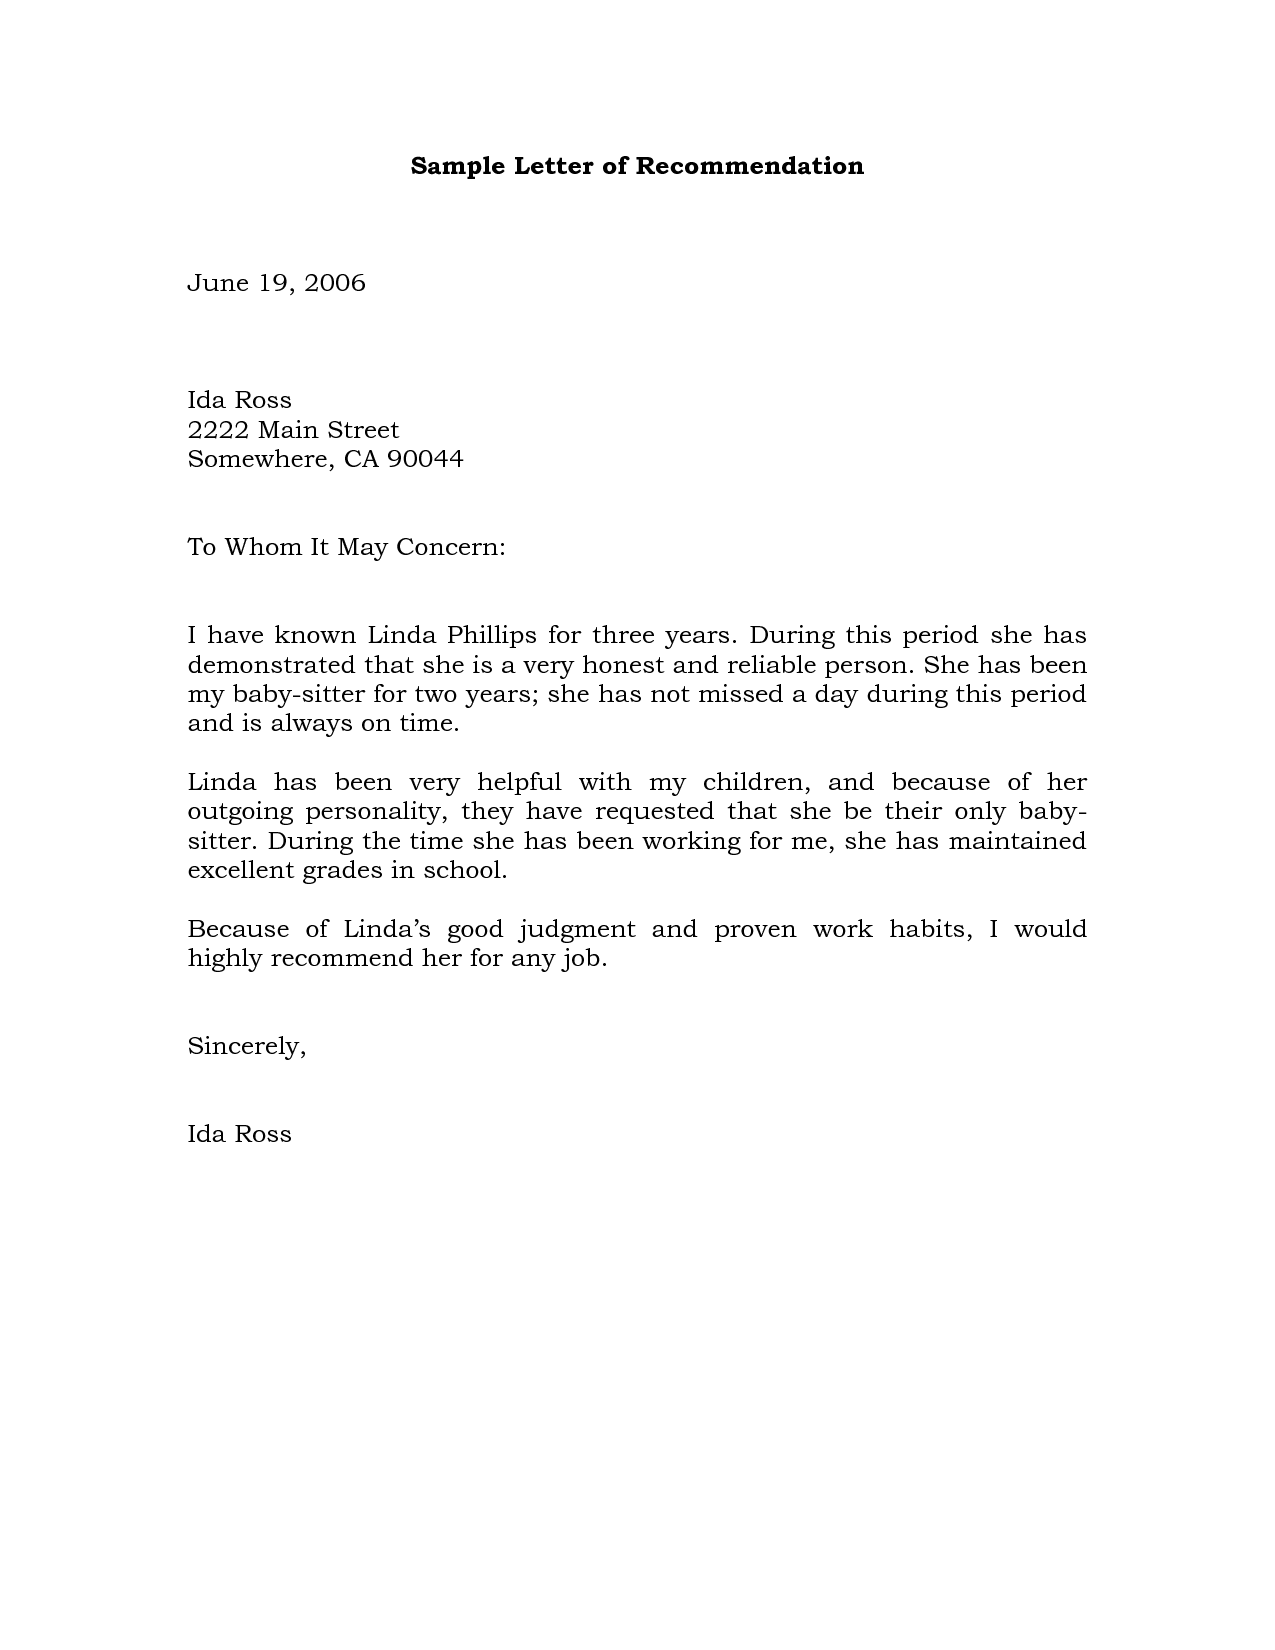 recommendation letter sample for nurse employee customer service recommendation letter sample for nurse employee sample nursing letter of recommendation letter sample letter sample referral